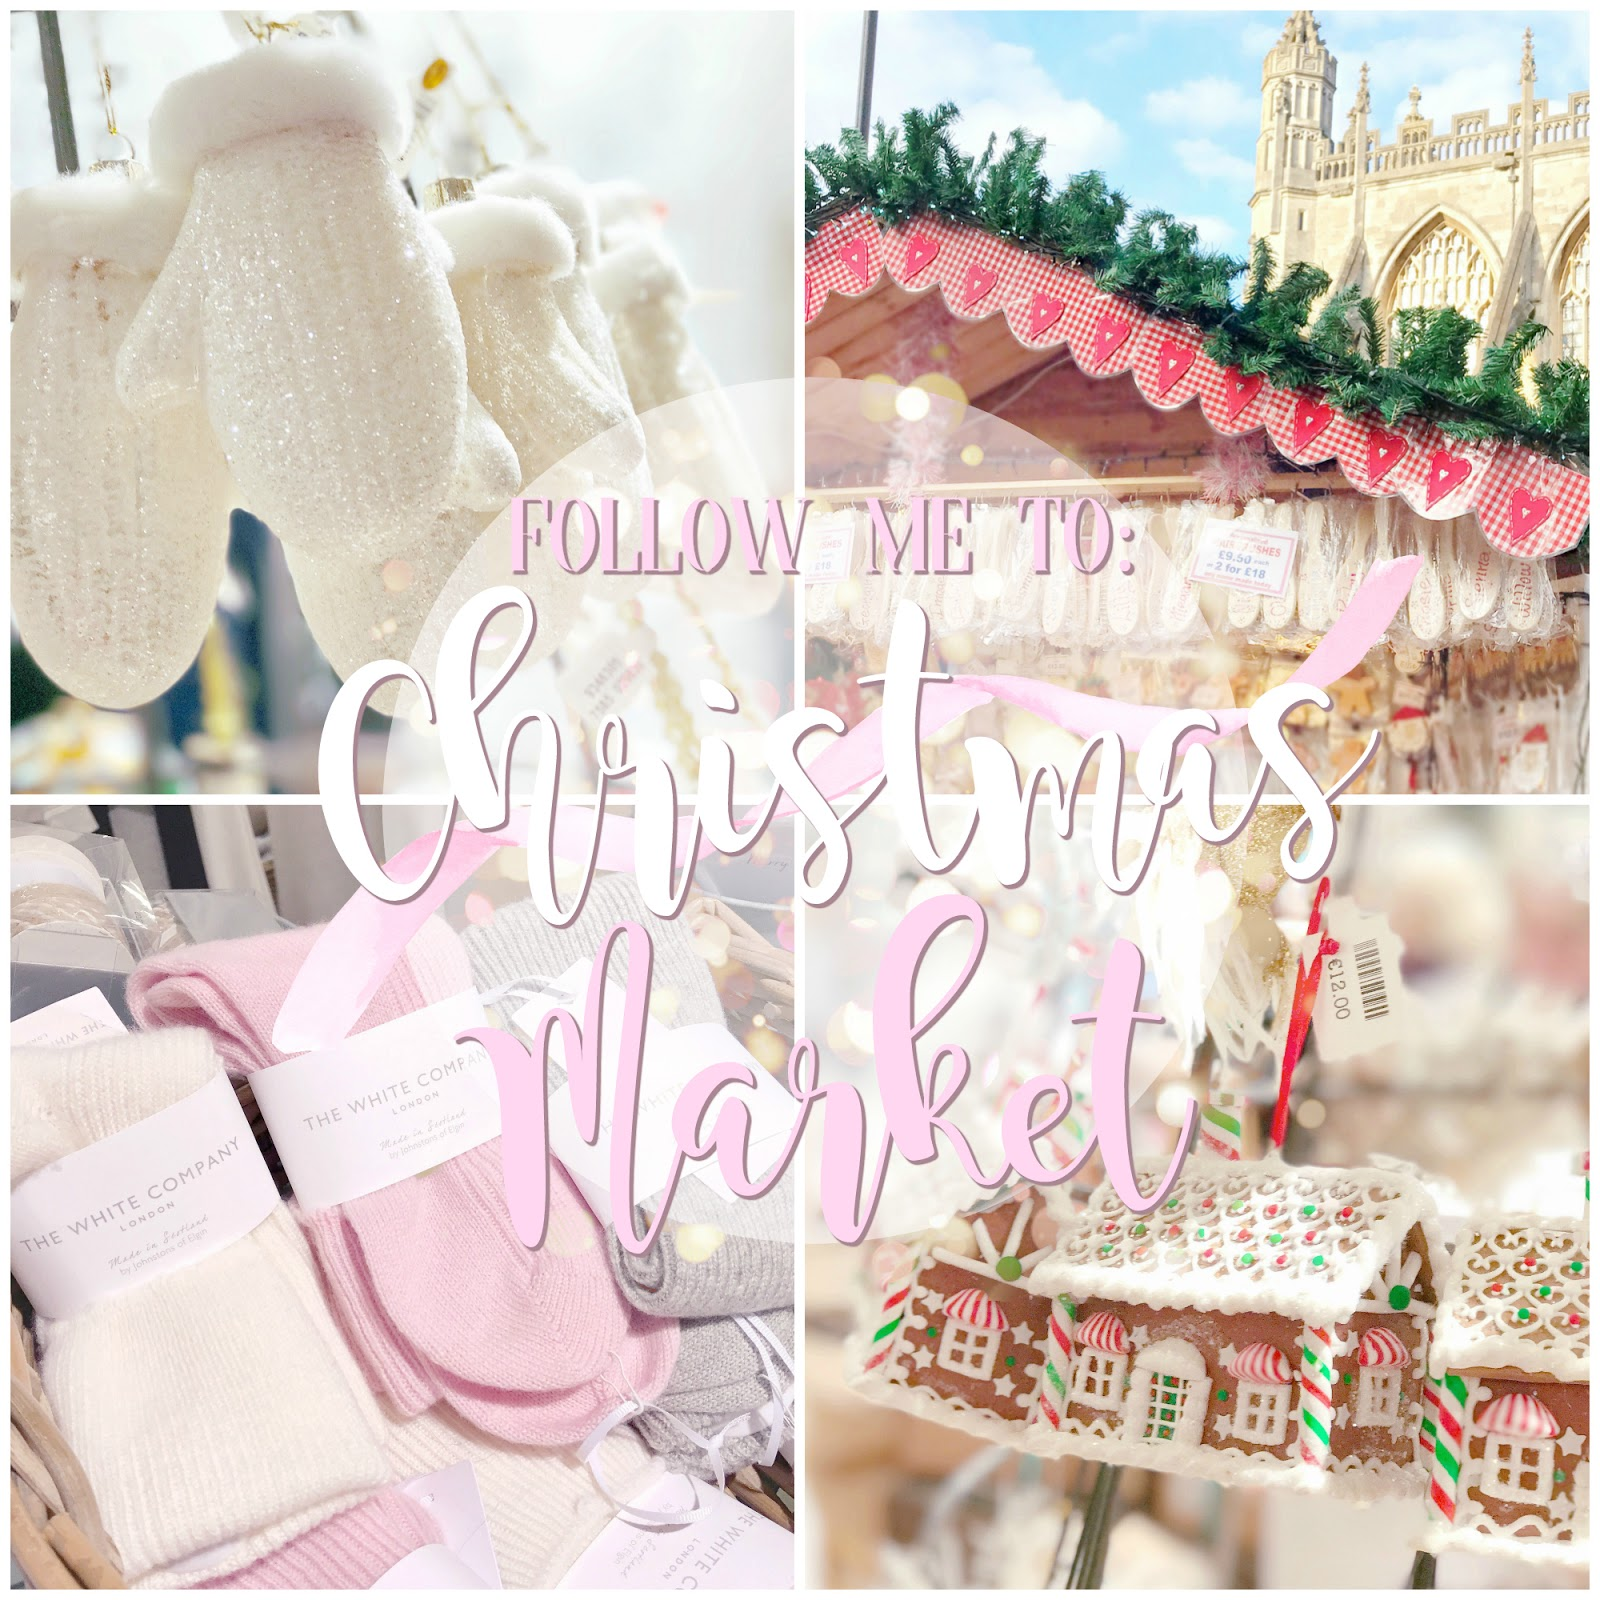 Love, Catherine | Follow Me To..Festive Shopping!